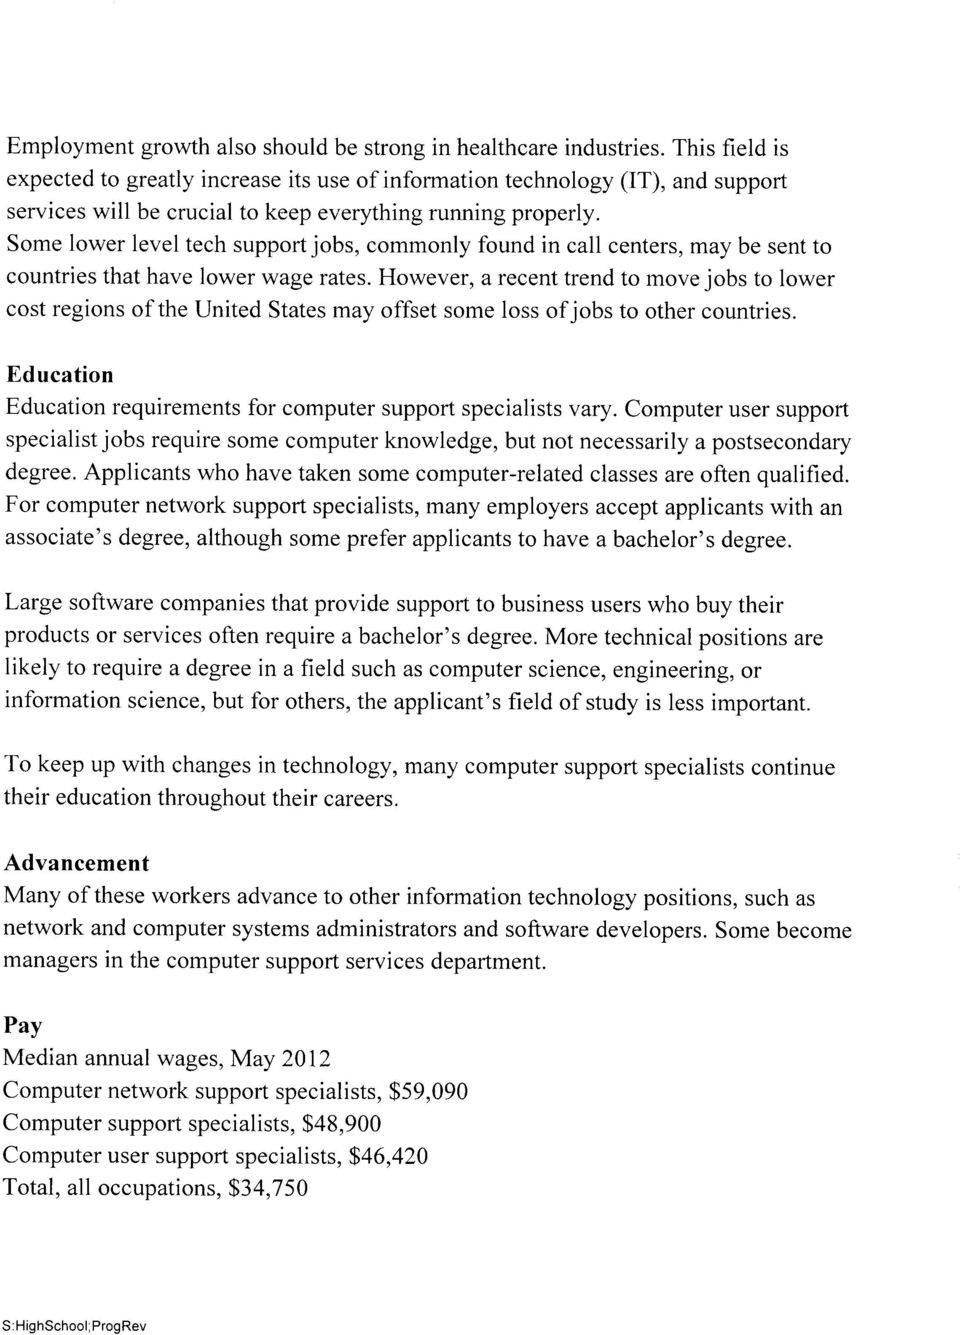 Some lower level tech support jobs, commonly found in call centers, may be sent to countries that have lower wage rates.